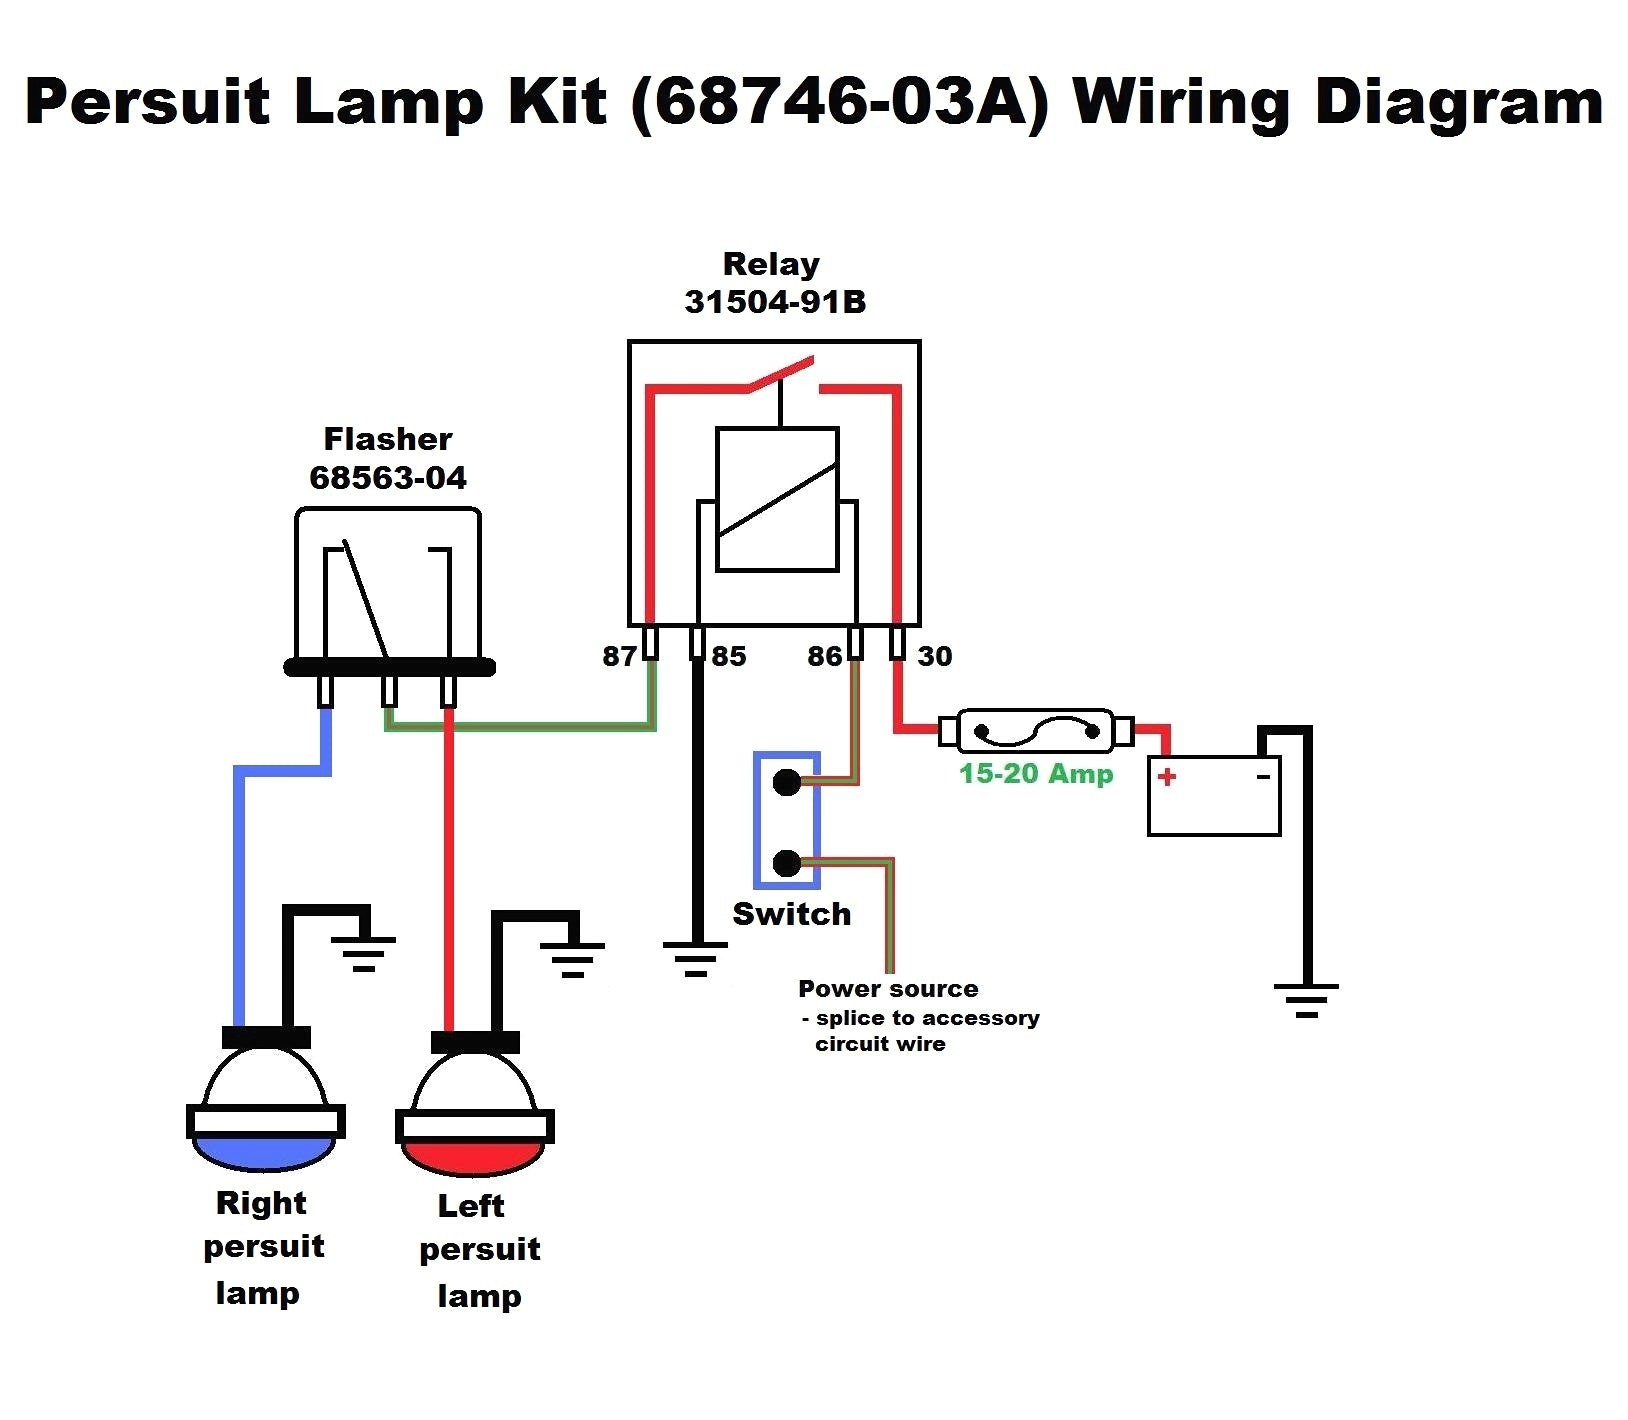 Turn Signal Flasher Wiring Diagram Signal Light Flasher Wiring Diagram Elegant Turn Signal Wiring Of Turn Signal Flasher Wiring Diagram